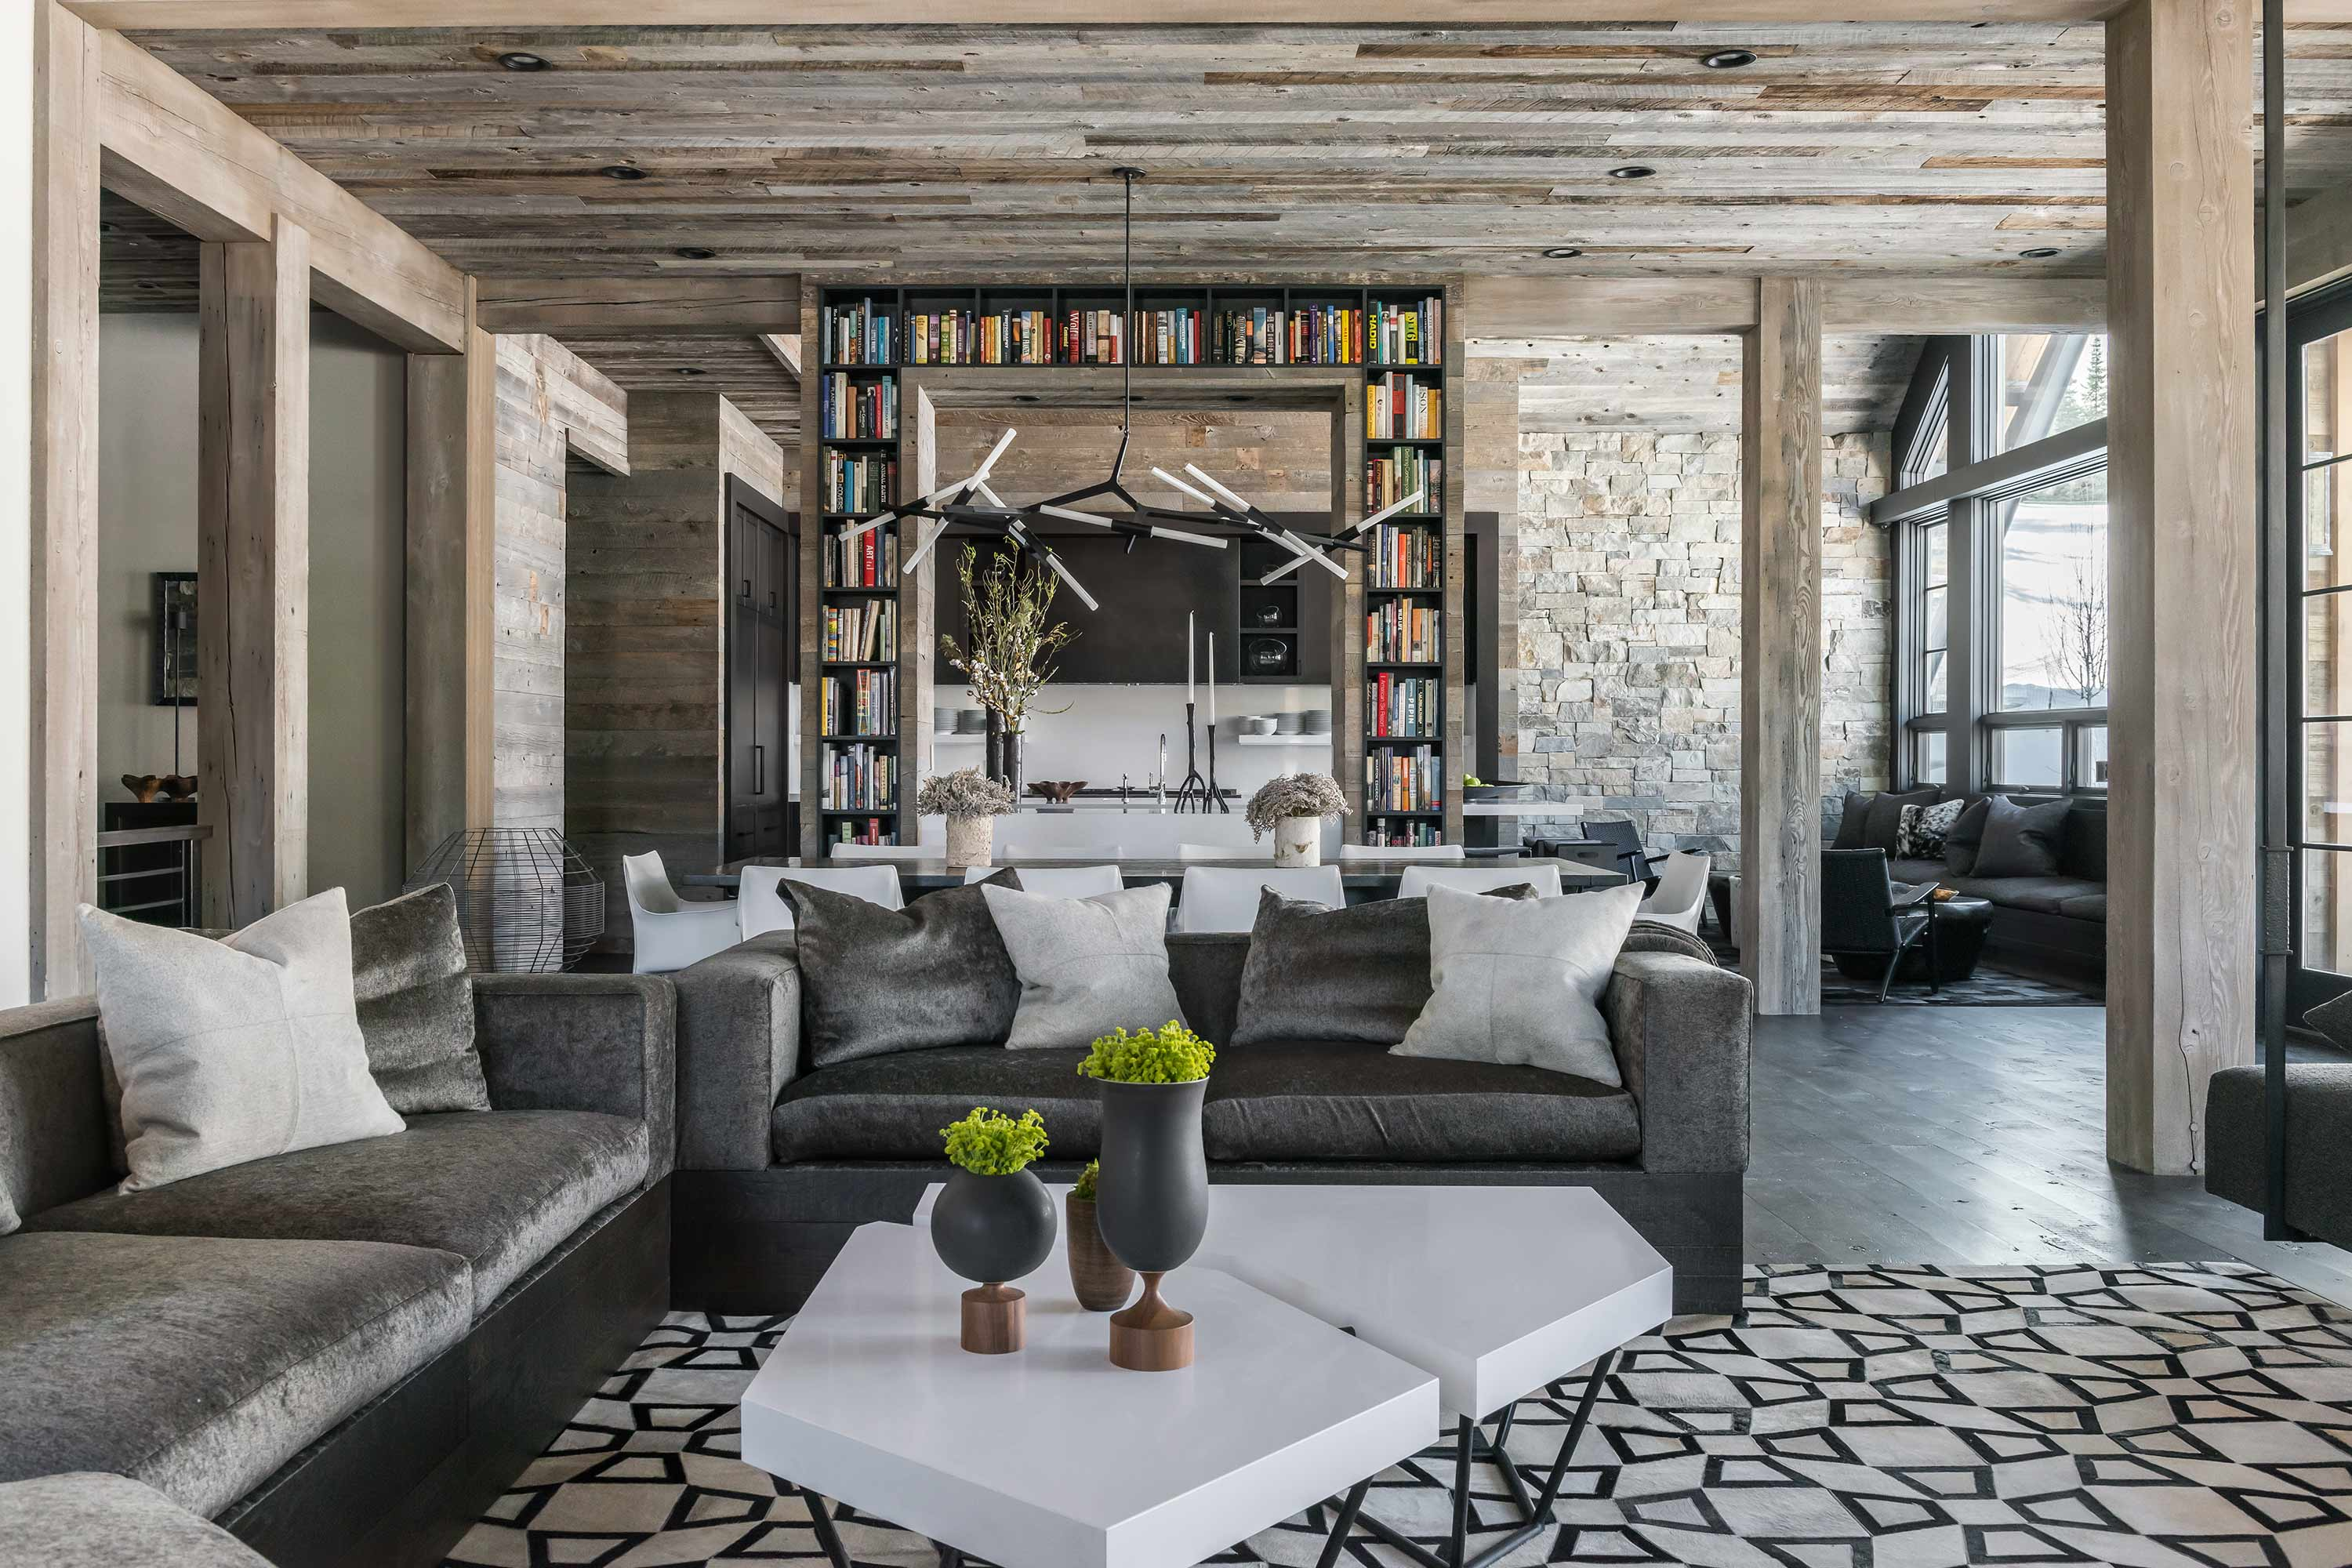 Ski Chalet Interior Design ski chalet in montana by locati architects | homeadore